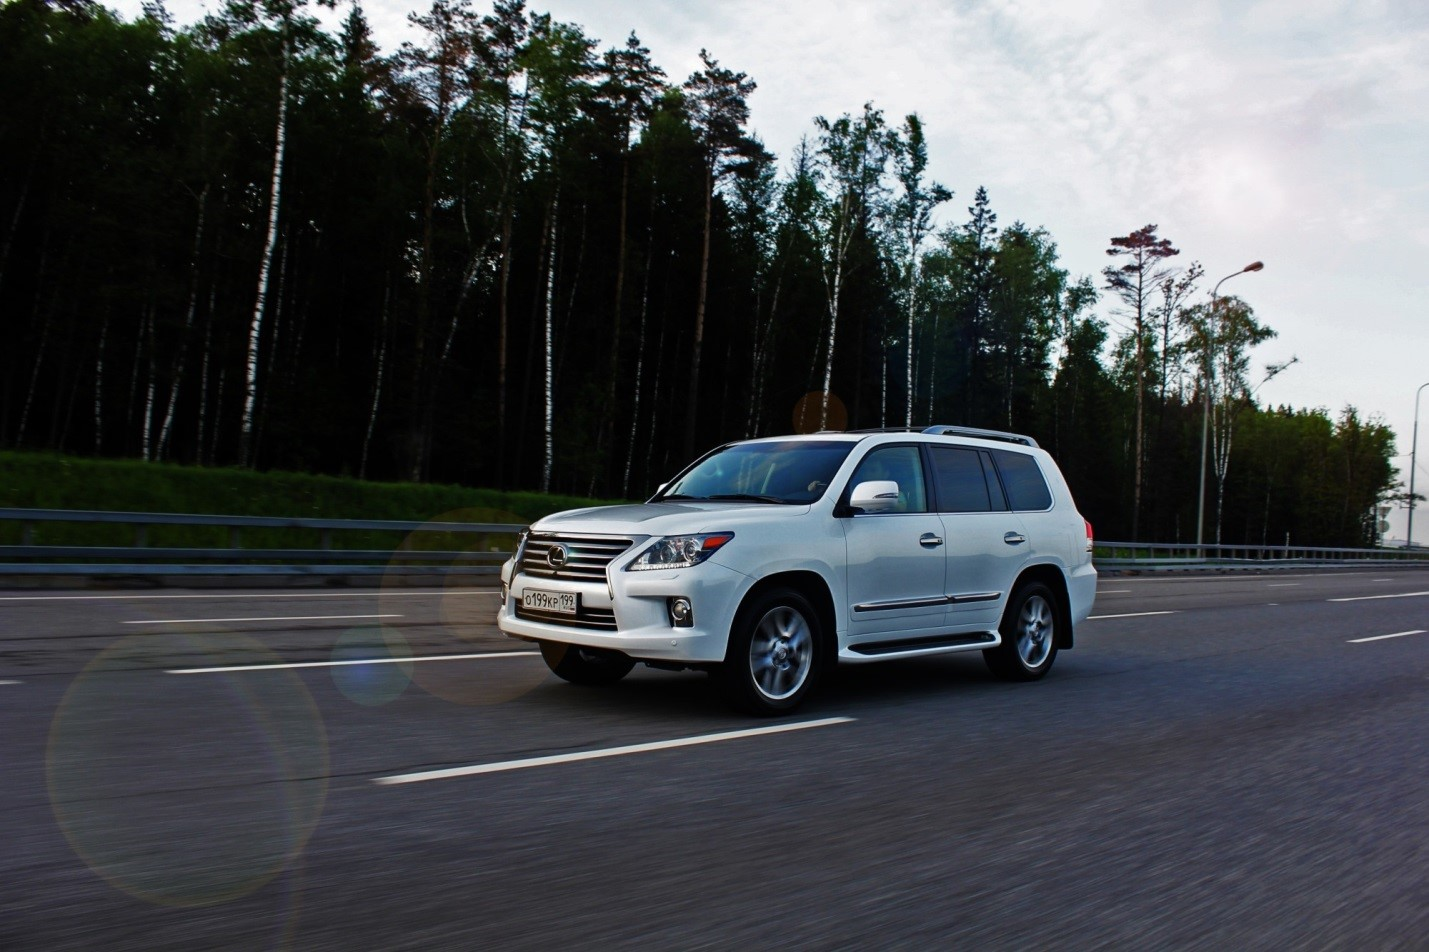 Top 5 Cars With the Best Safety Features in 2019